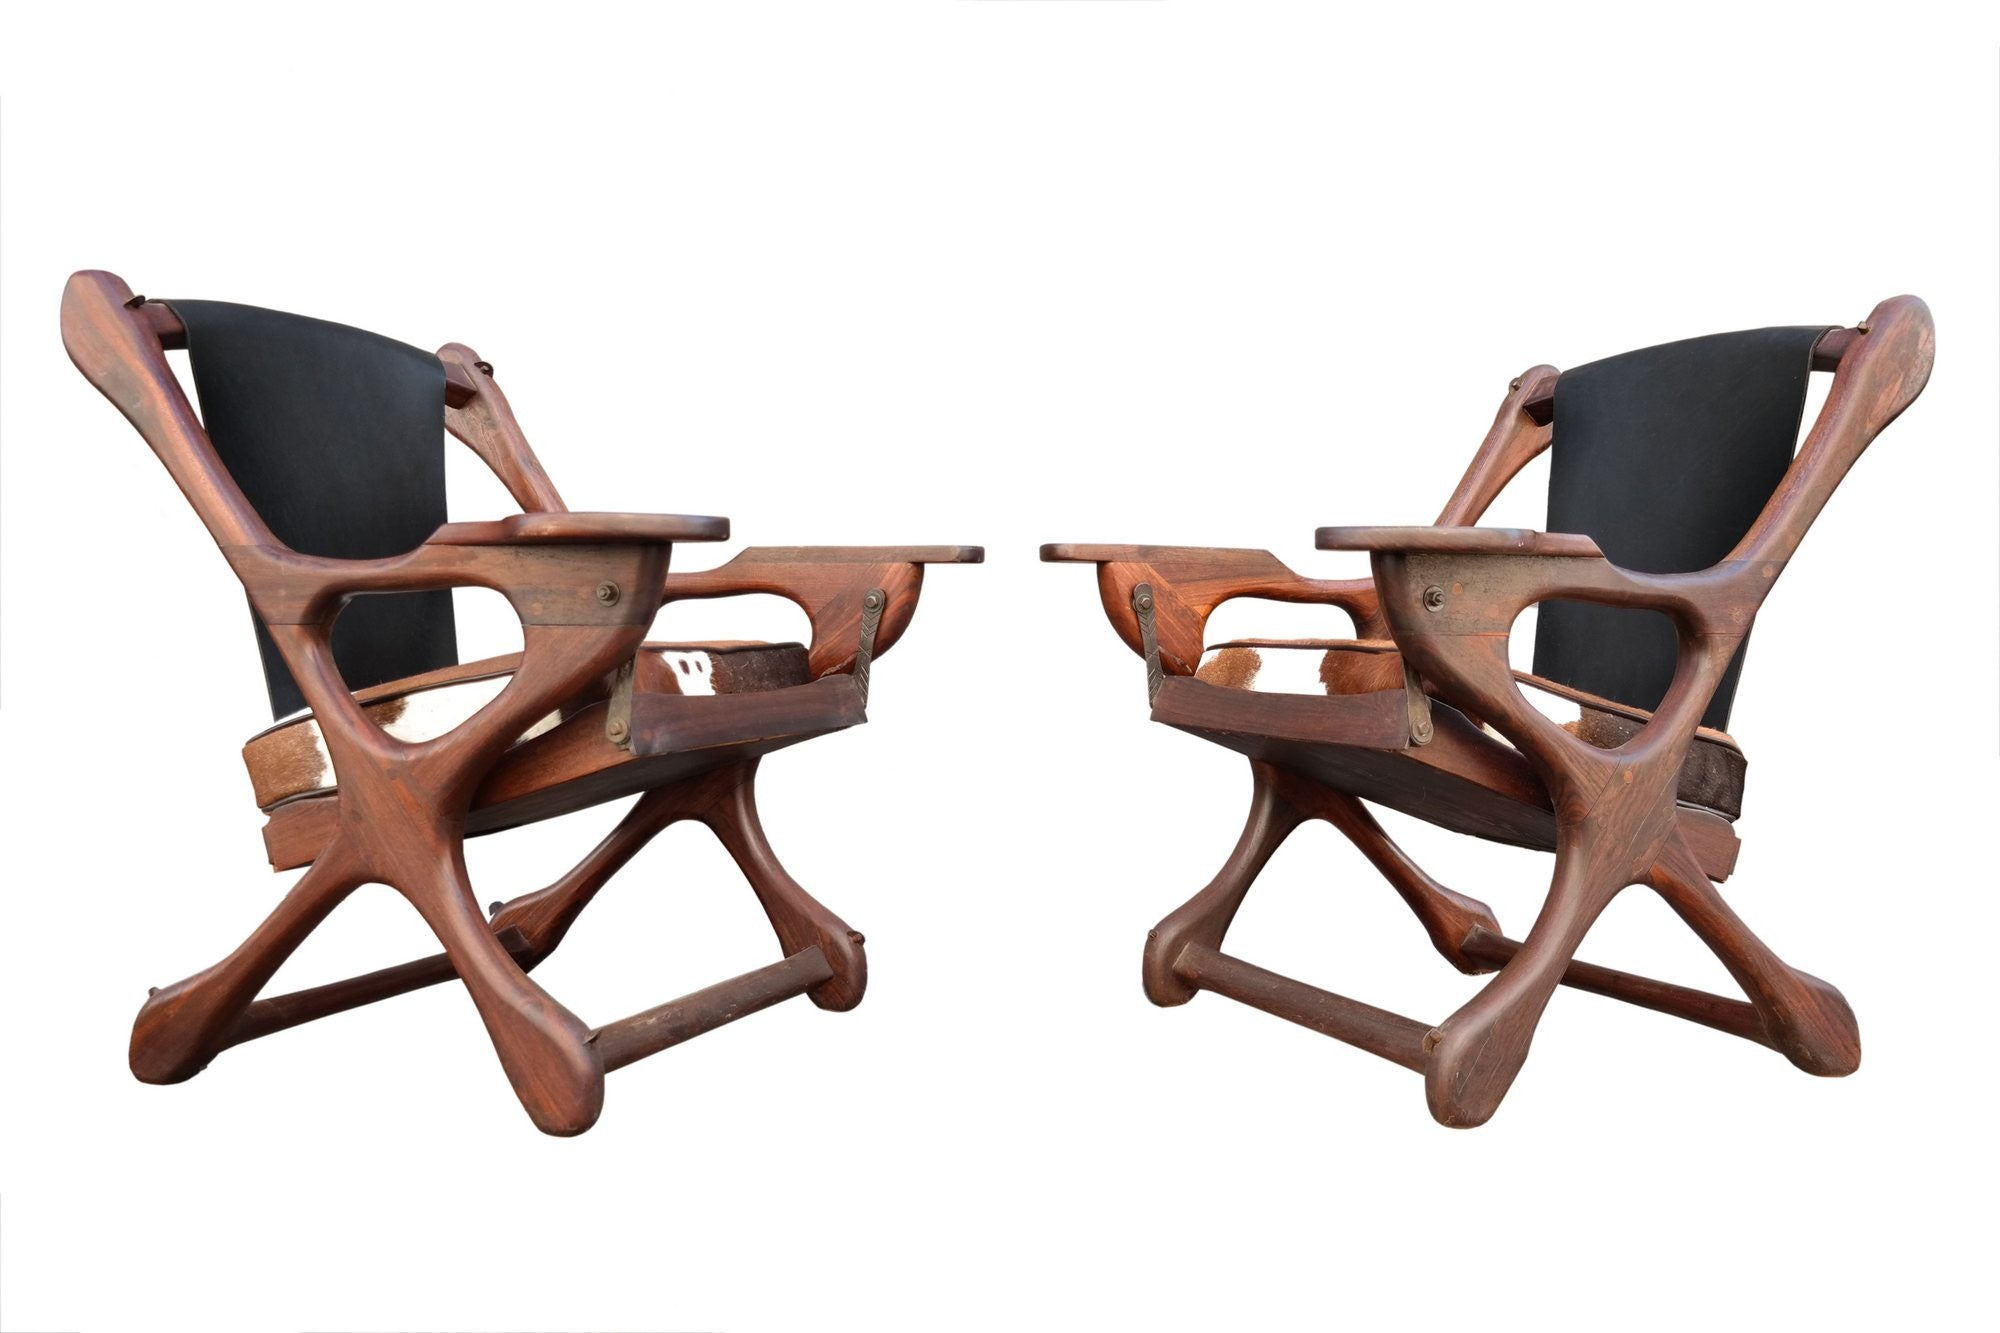 sc 1 st  The Wooden Palate & Don Shoemaker Sling Chairs - The Wooden Palate